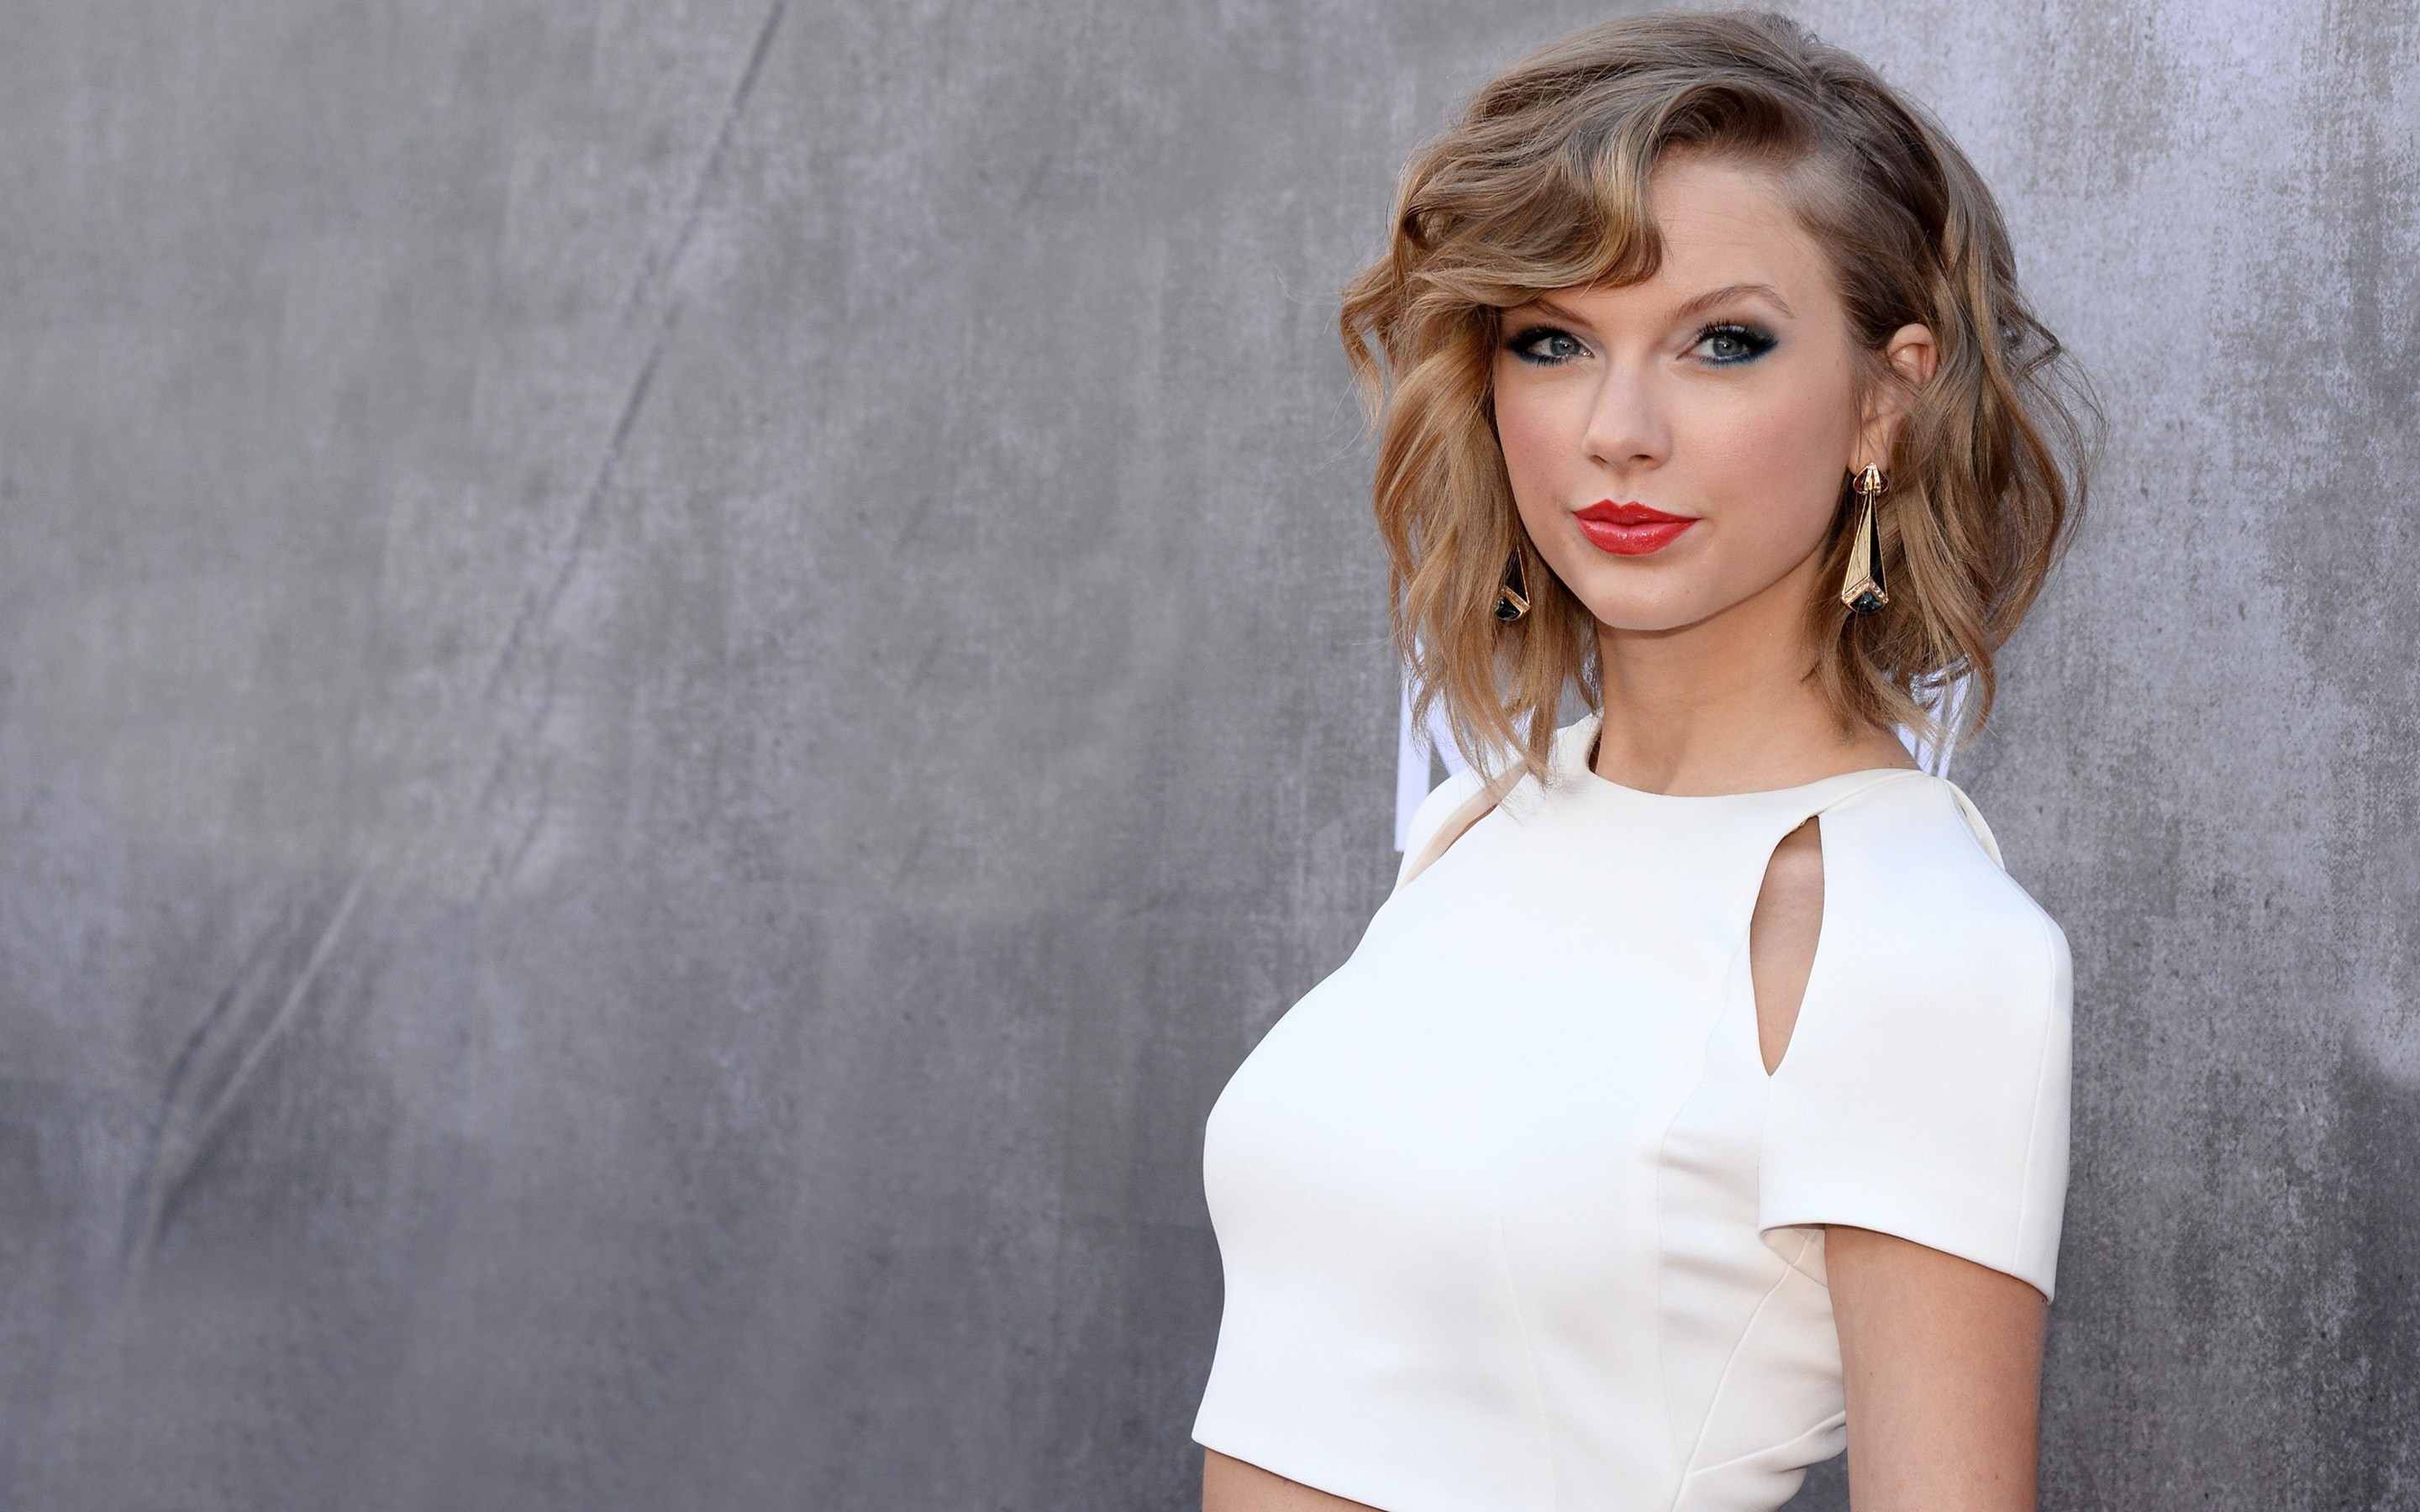 Download Taylor Swift Celebrity Girl 1680x1050 Resolution Full HD